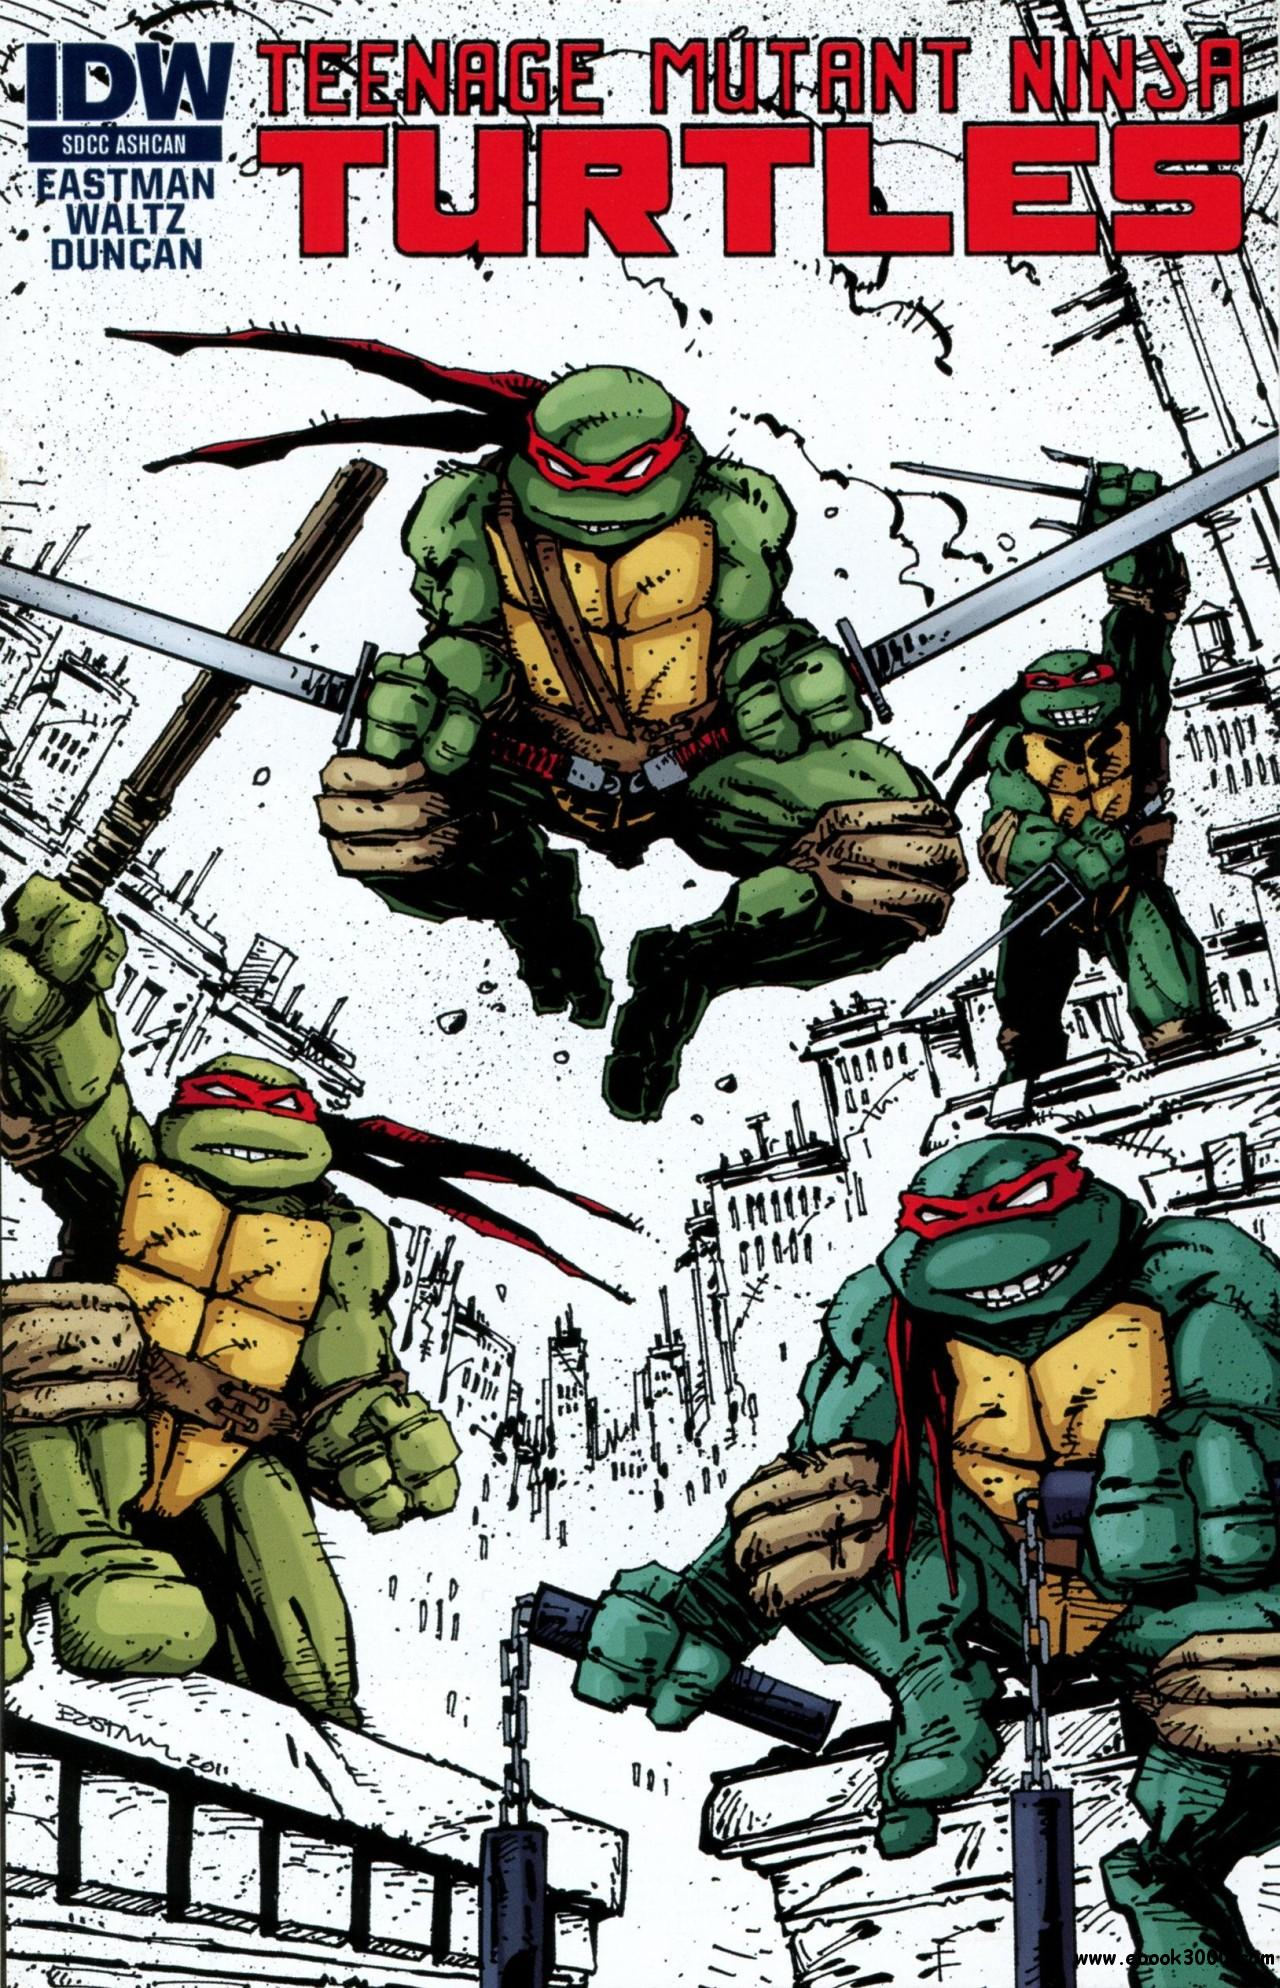 Teenage Mutant Ninja Turtles SDCC Ashcan (2011) free download